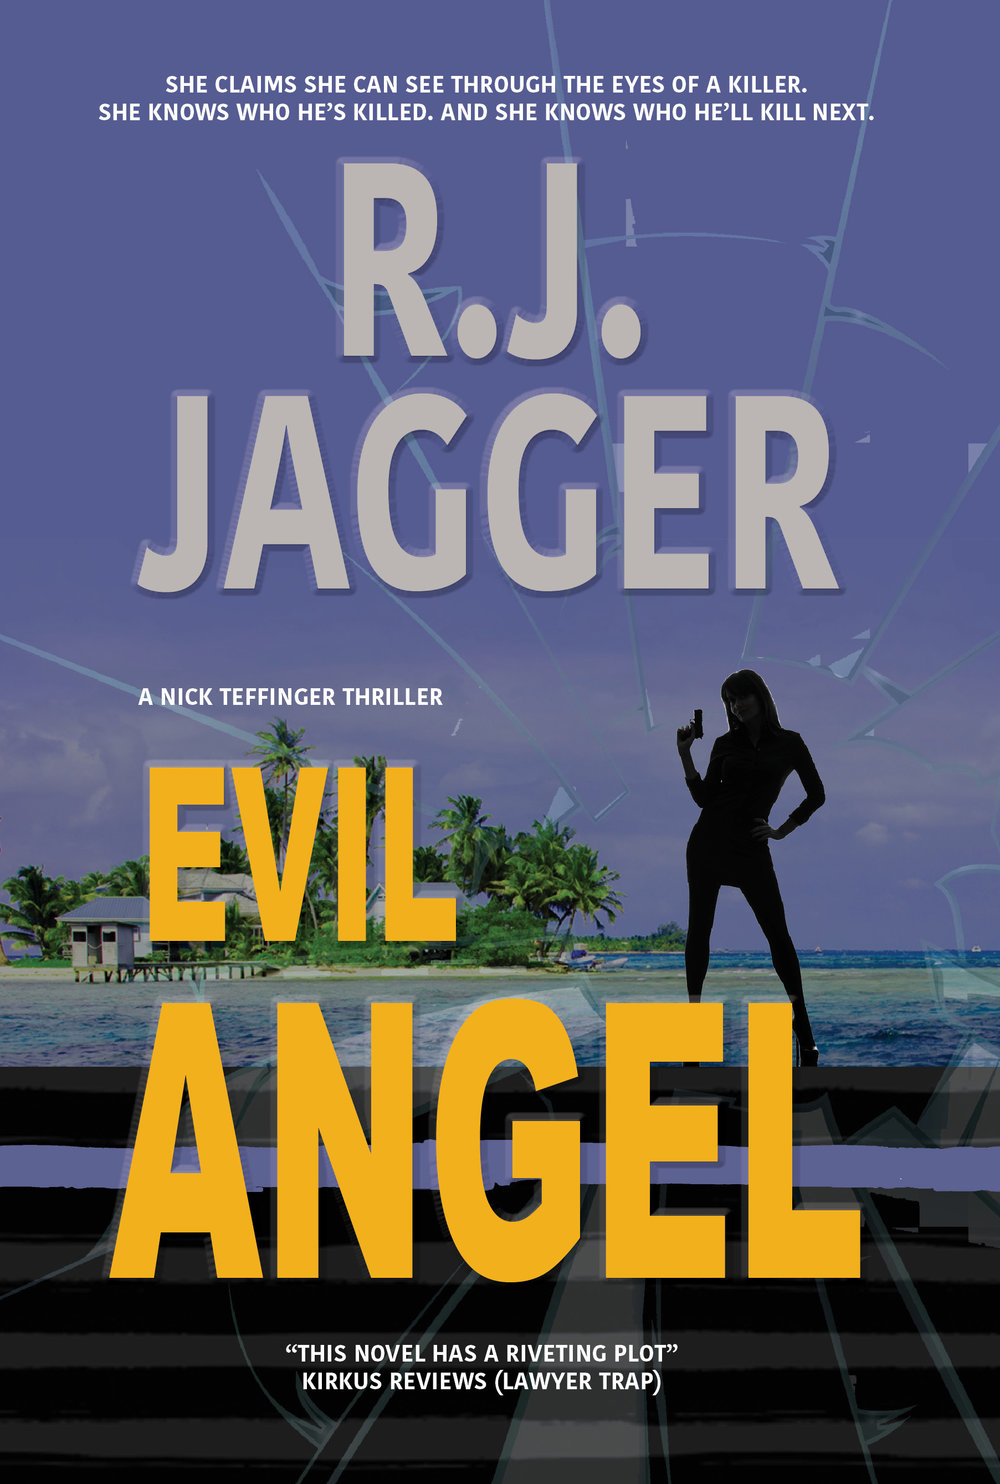 EVIL ANGEL - In this masterpiece of riveting thrills from acclaimed author R.J. Jagger, Denver homicide detective Nick Teffinger finds himself pulled deep into the heart of the Caribbean in a twisty relationship with a mysterious woman who claims she can see through the eyes of a killer. She knows who he's killed. And she knows who he'll kill next. Coming in 2018 in hardcover, paperback, ebook and audiobook.